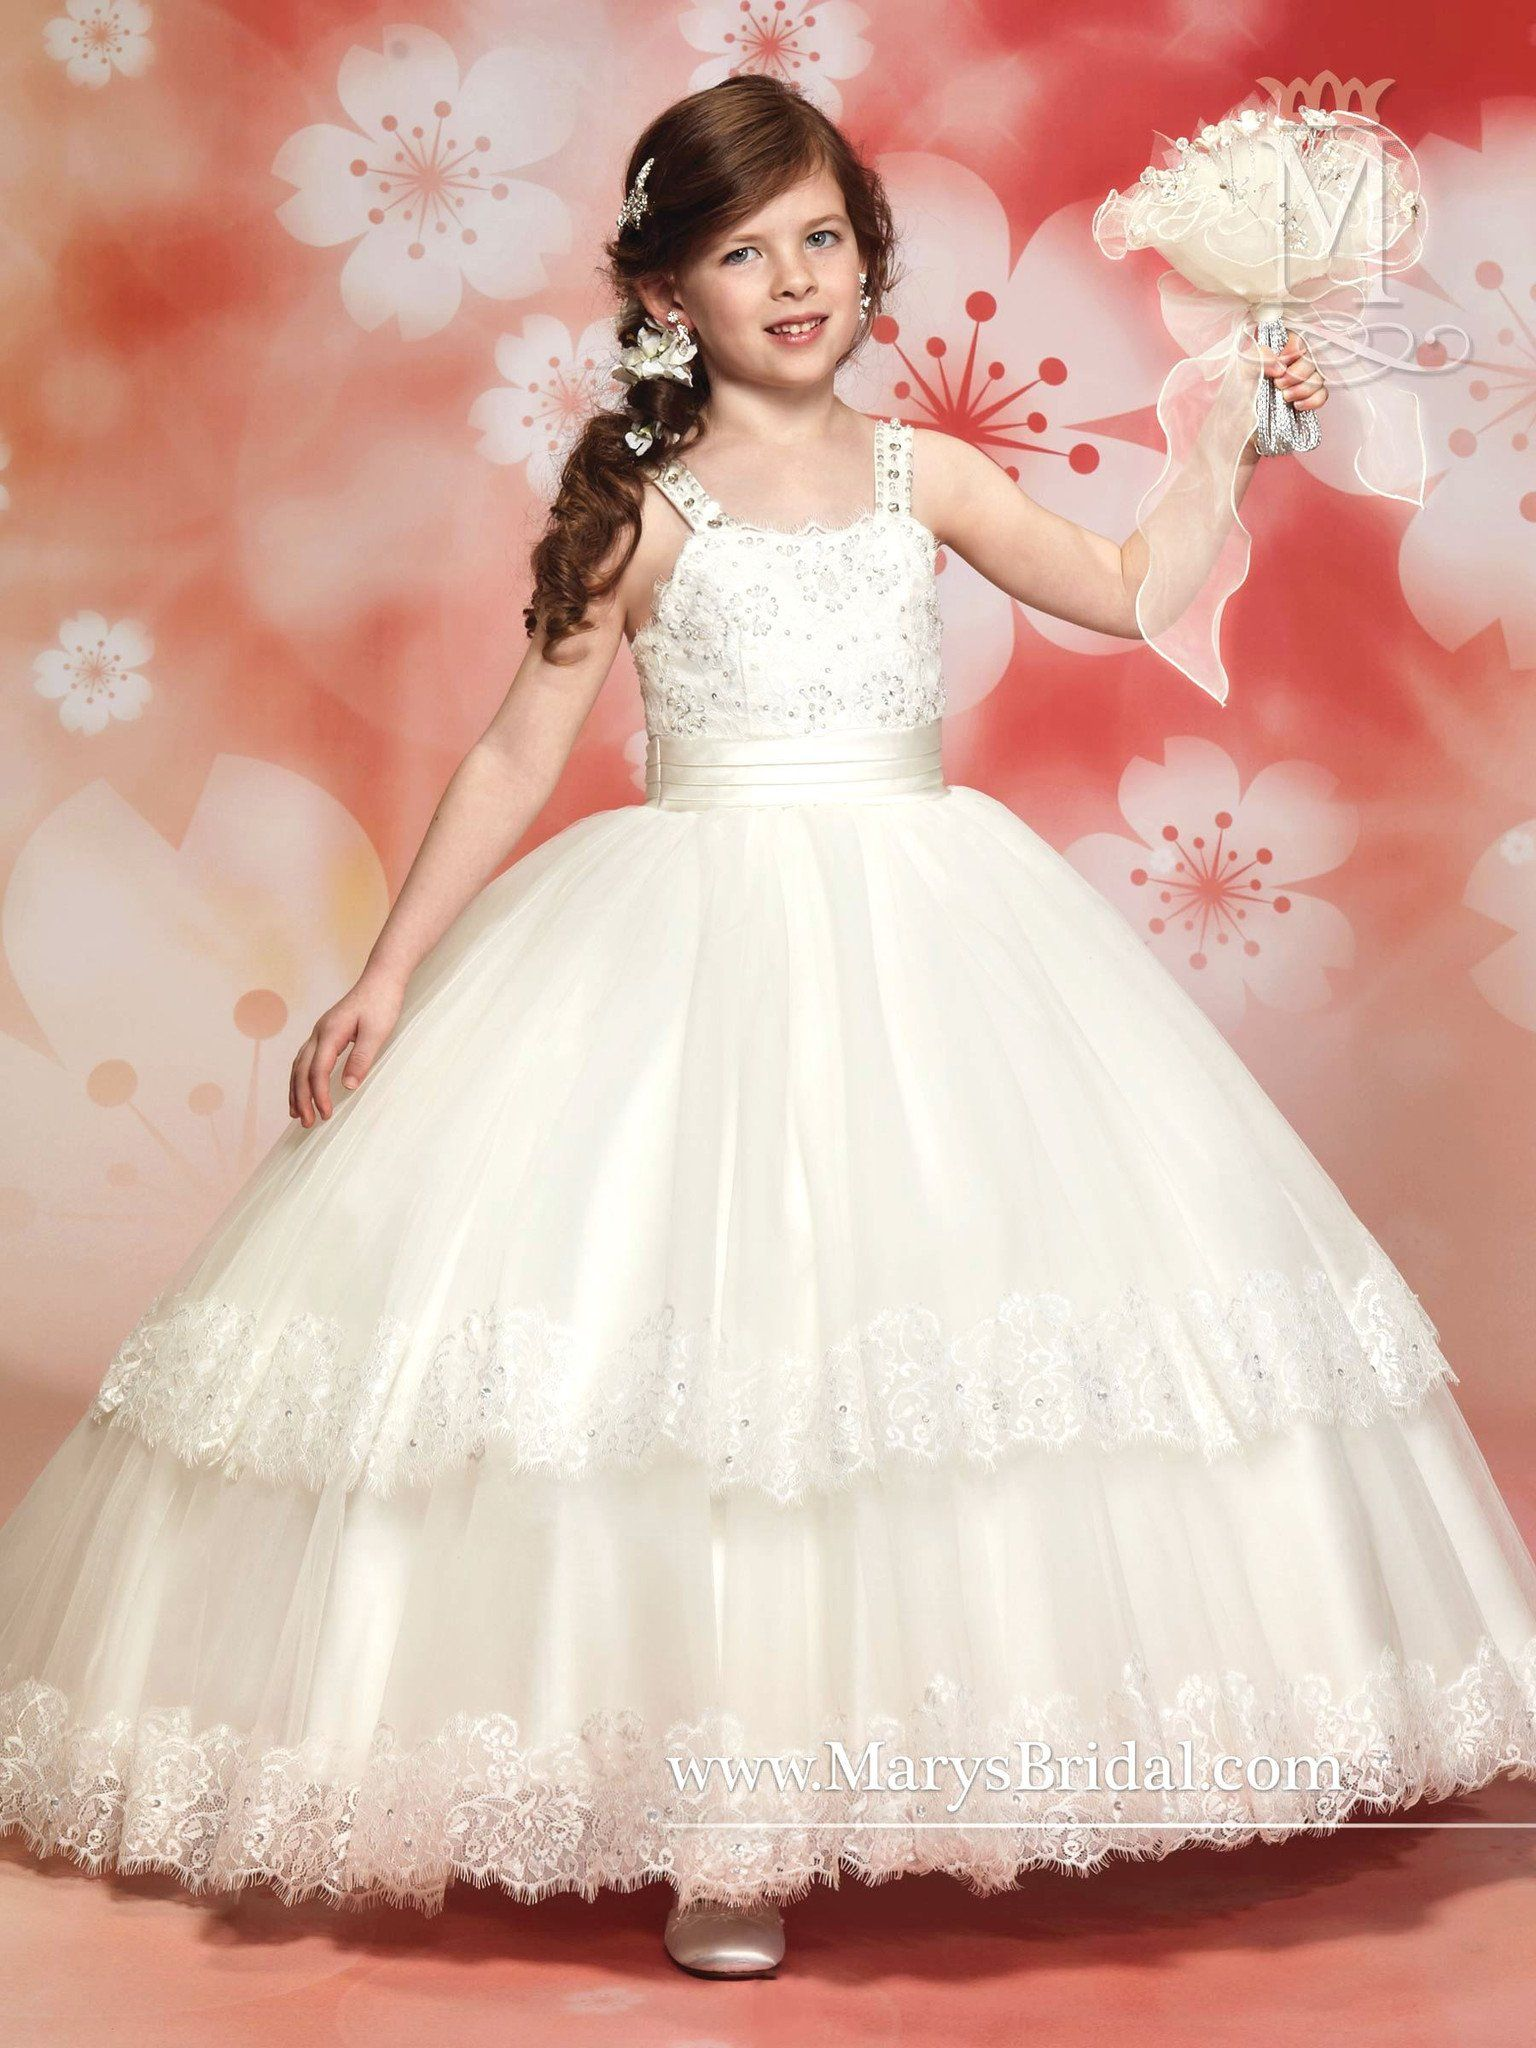 Beach wedding flower girl dresses  Sleeveless Organza Flower Girl Dress by Maryus Bridal Cupids F